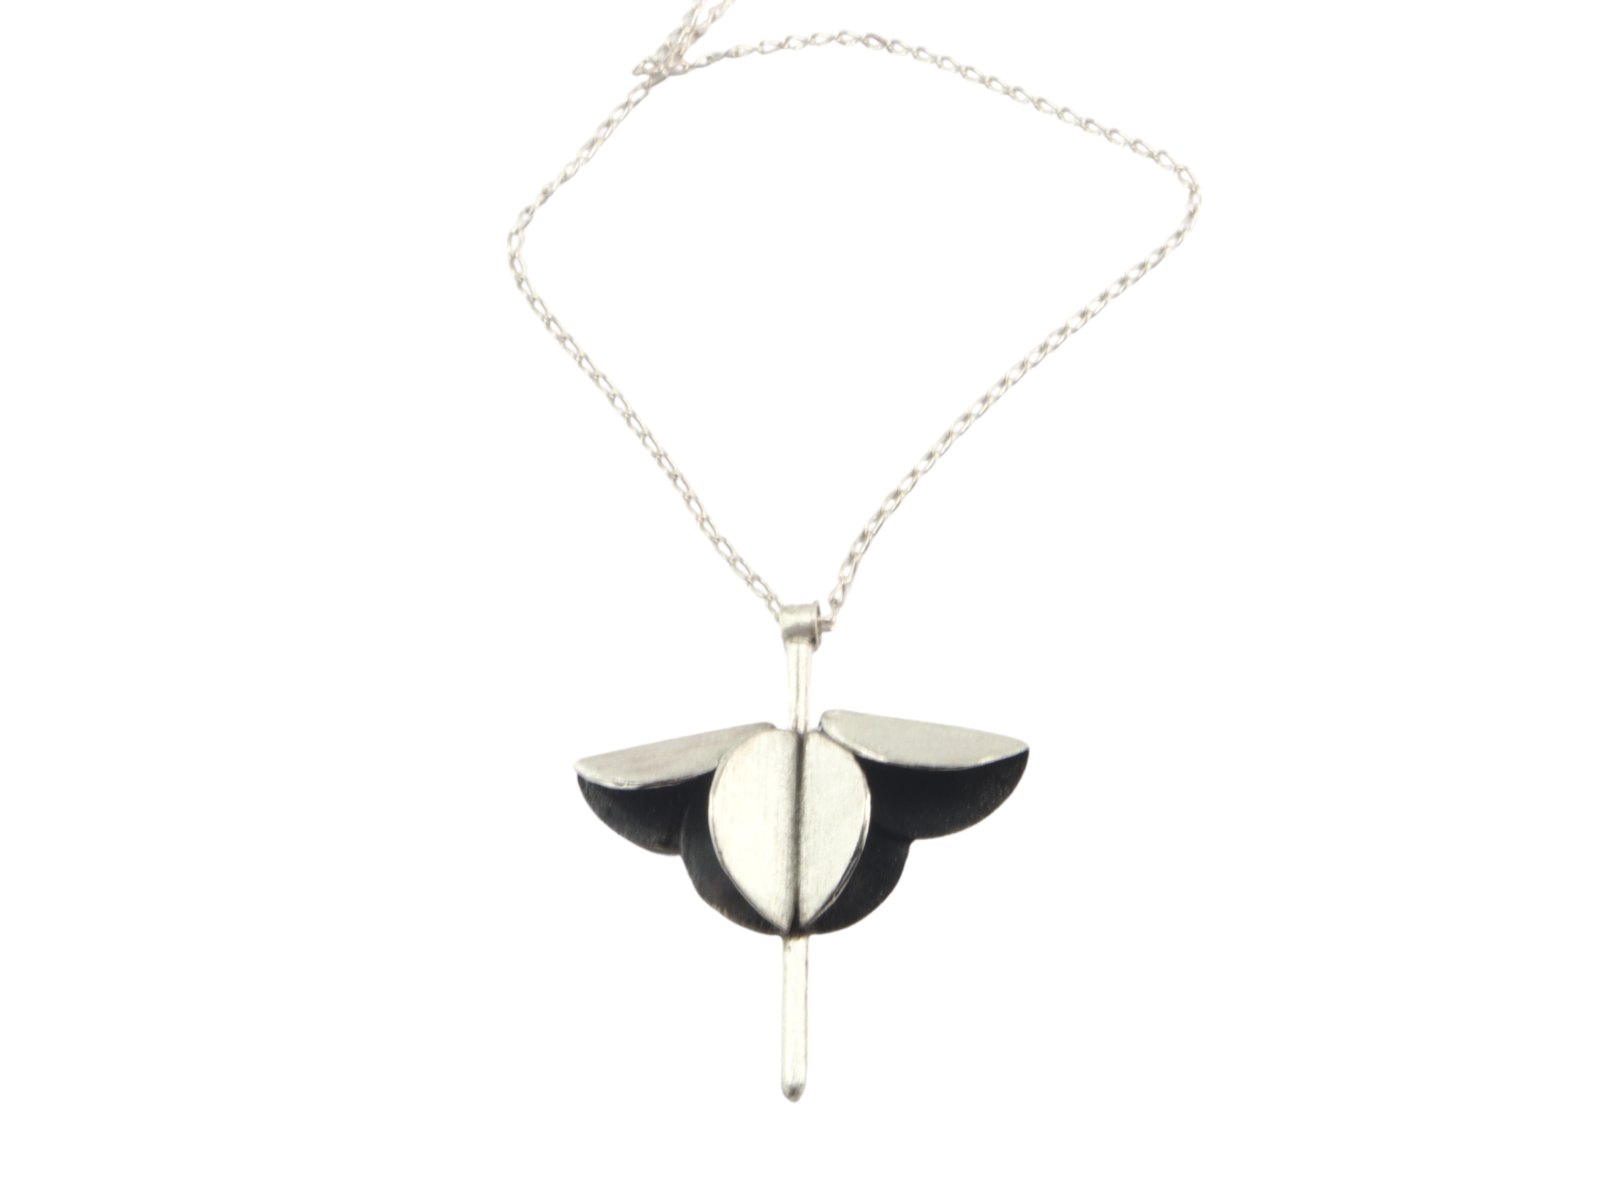 Wish I could Fly necklace